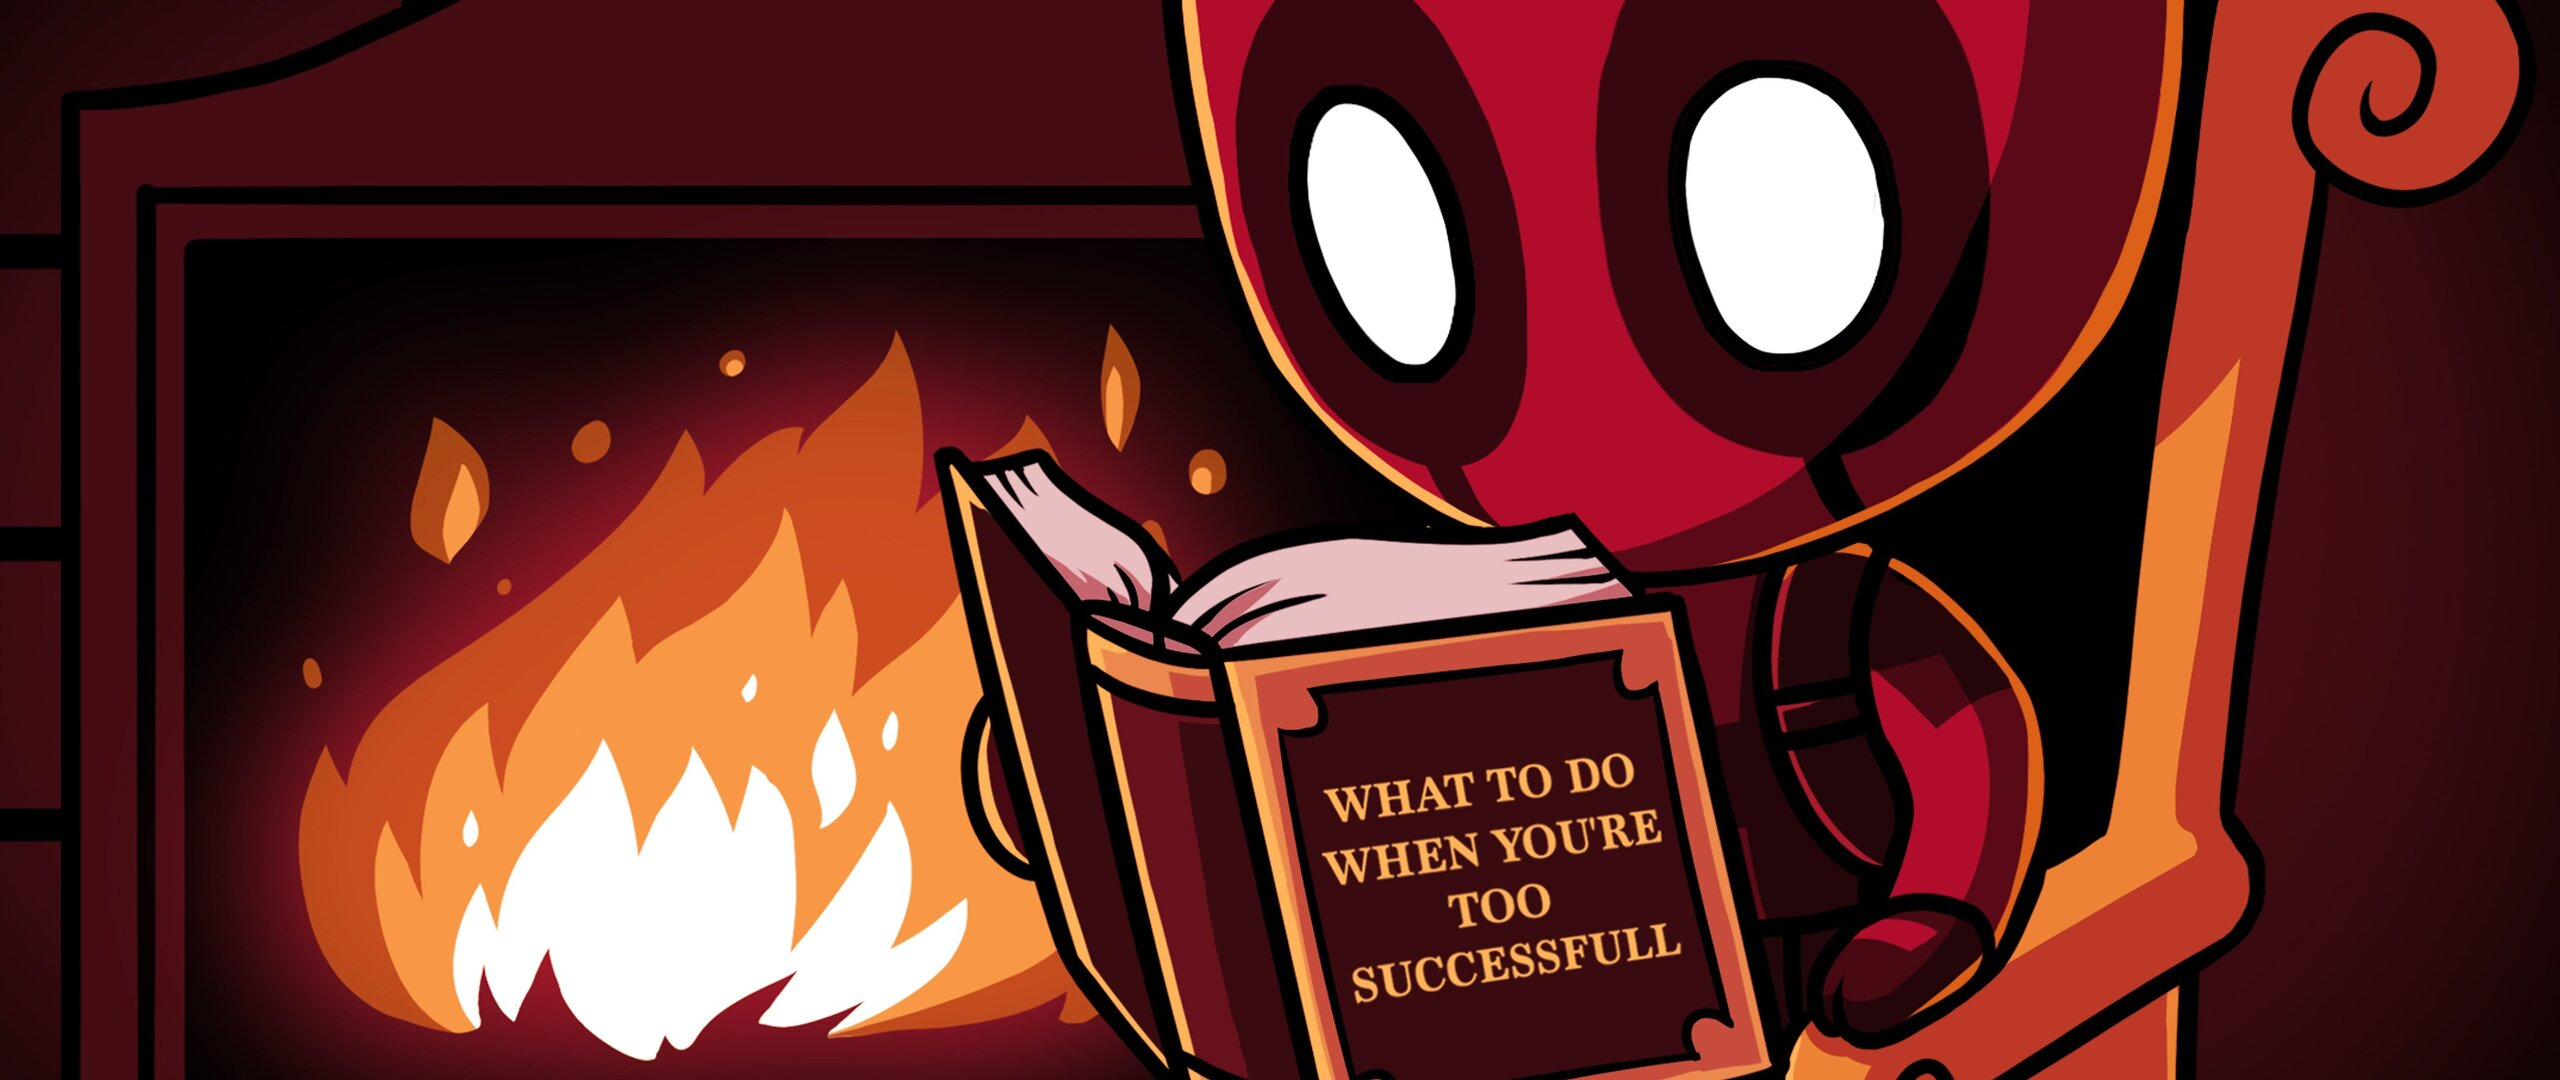 2560x1080 Deadpool Secret Of Success 2560x1080 Resolution Hd 4k Wallpapers Images Backgrounds Photos And Pictures